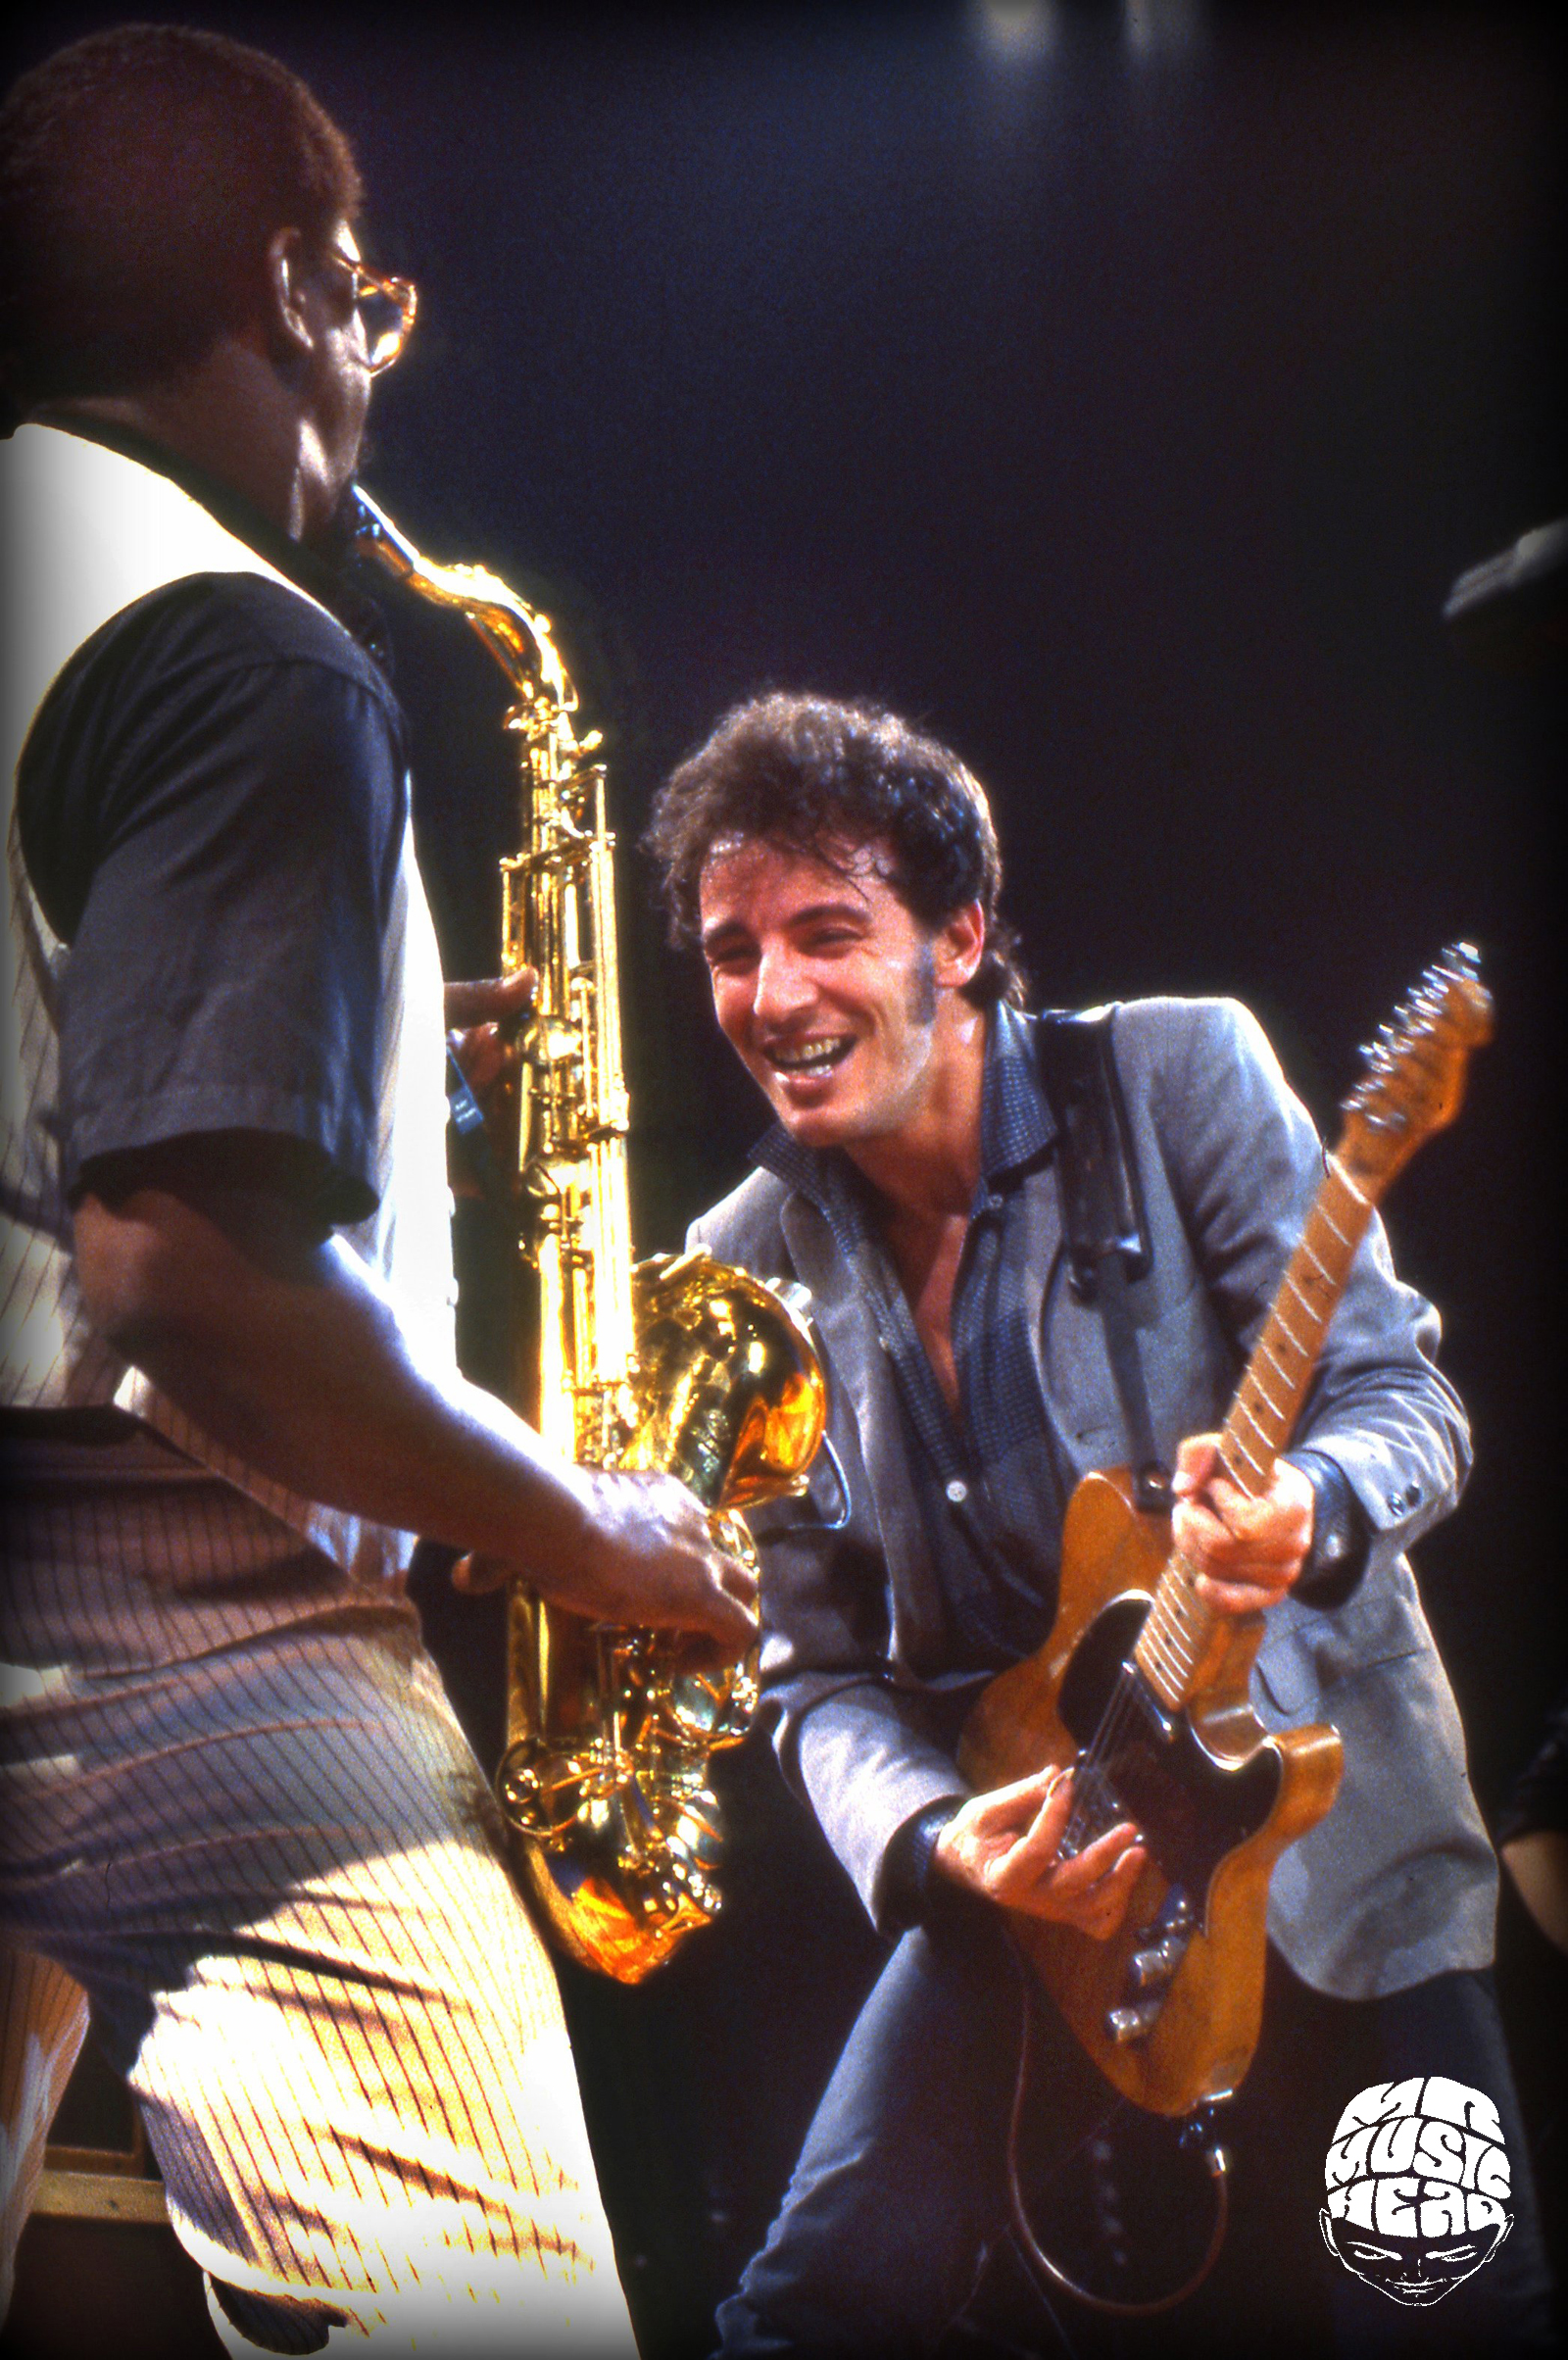 peter simon_bruce springsteen.jpg